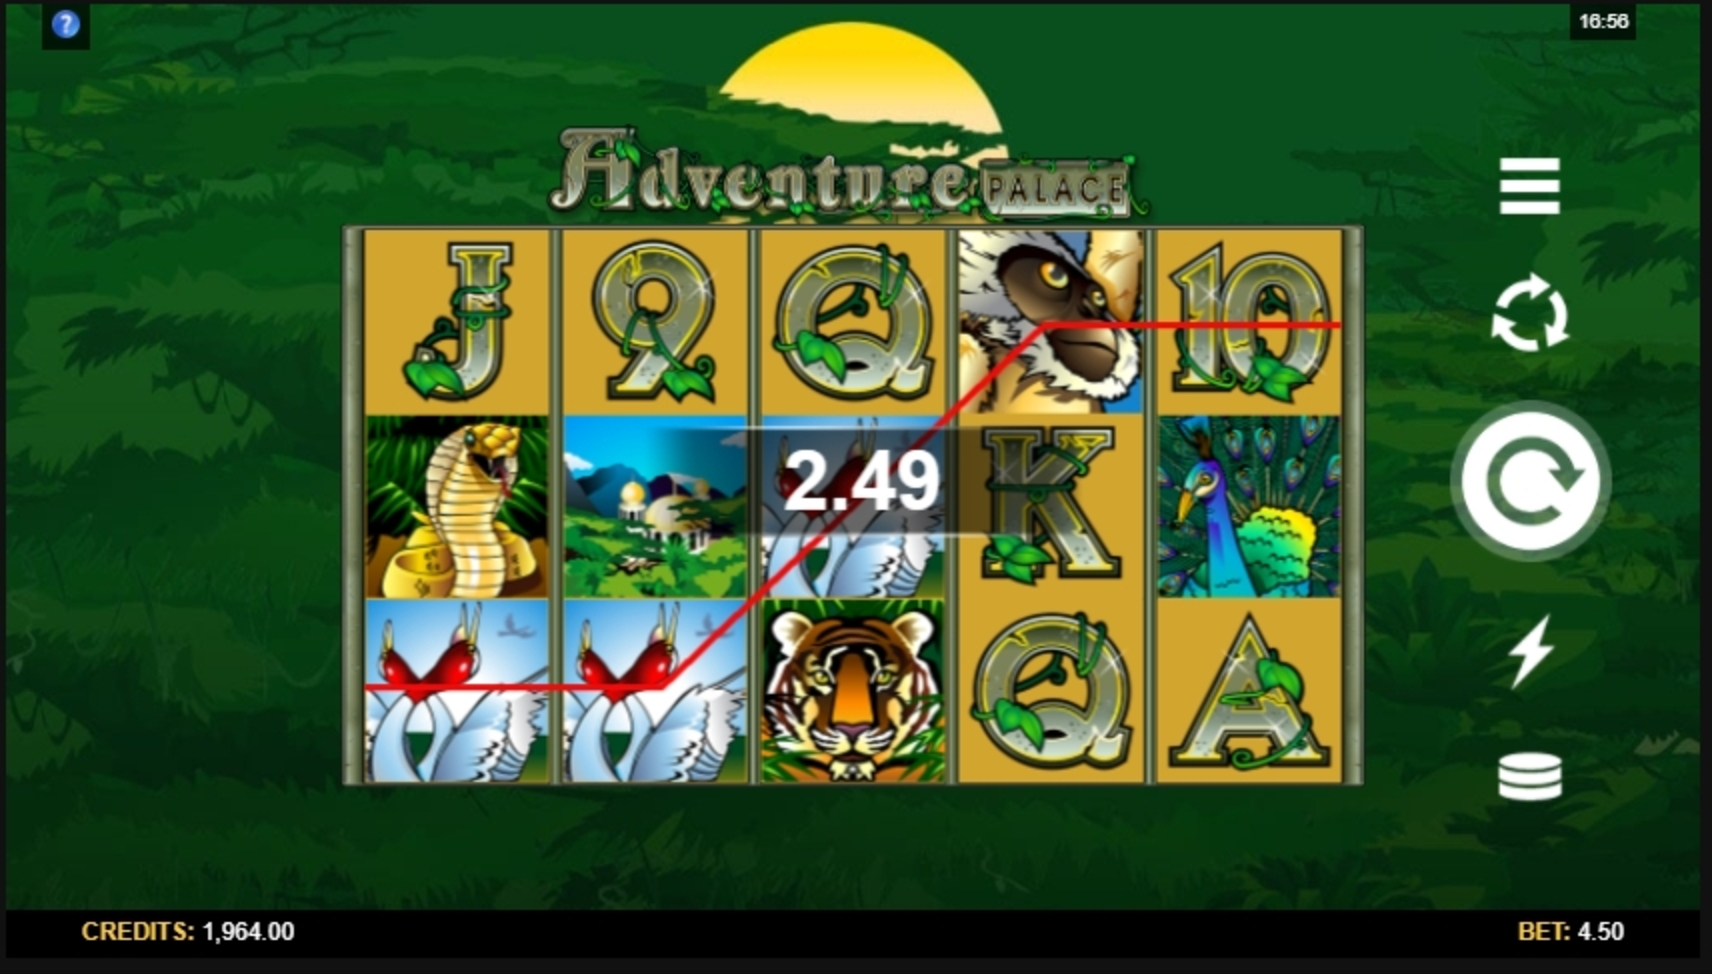 Win Money in Adventure Palace Free Slot Game by Microgaming